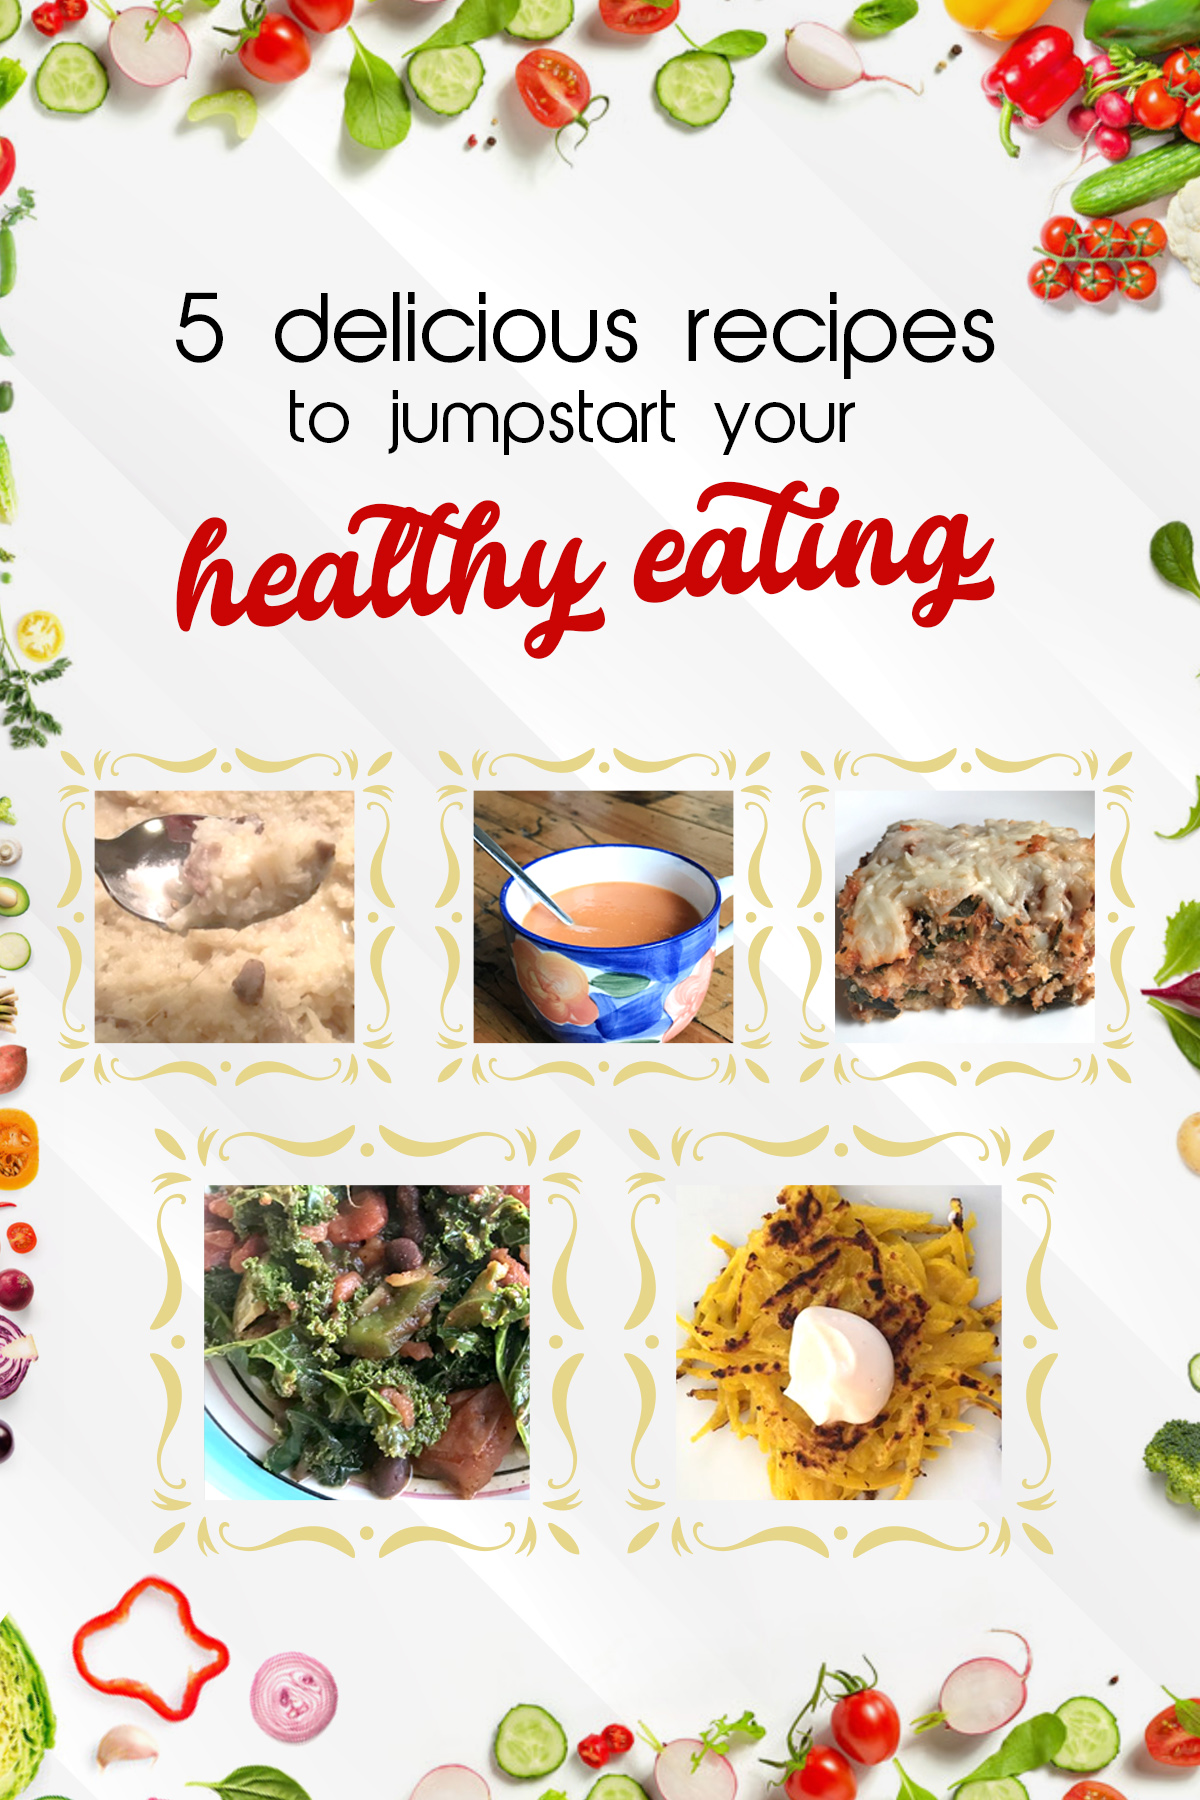 5 Delicious Recipes to Jumpstart Your Healthy Eating